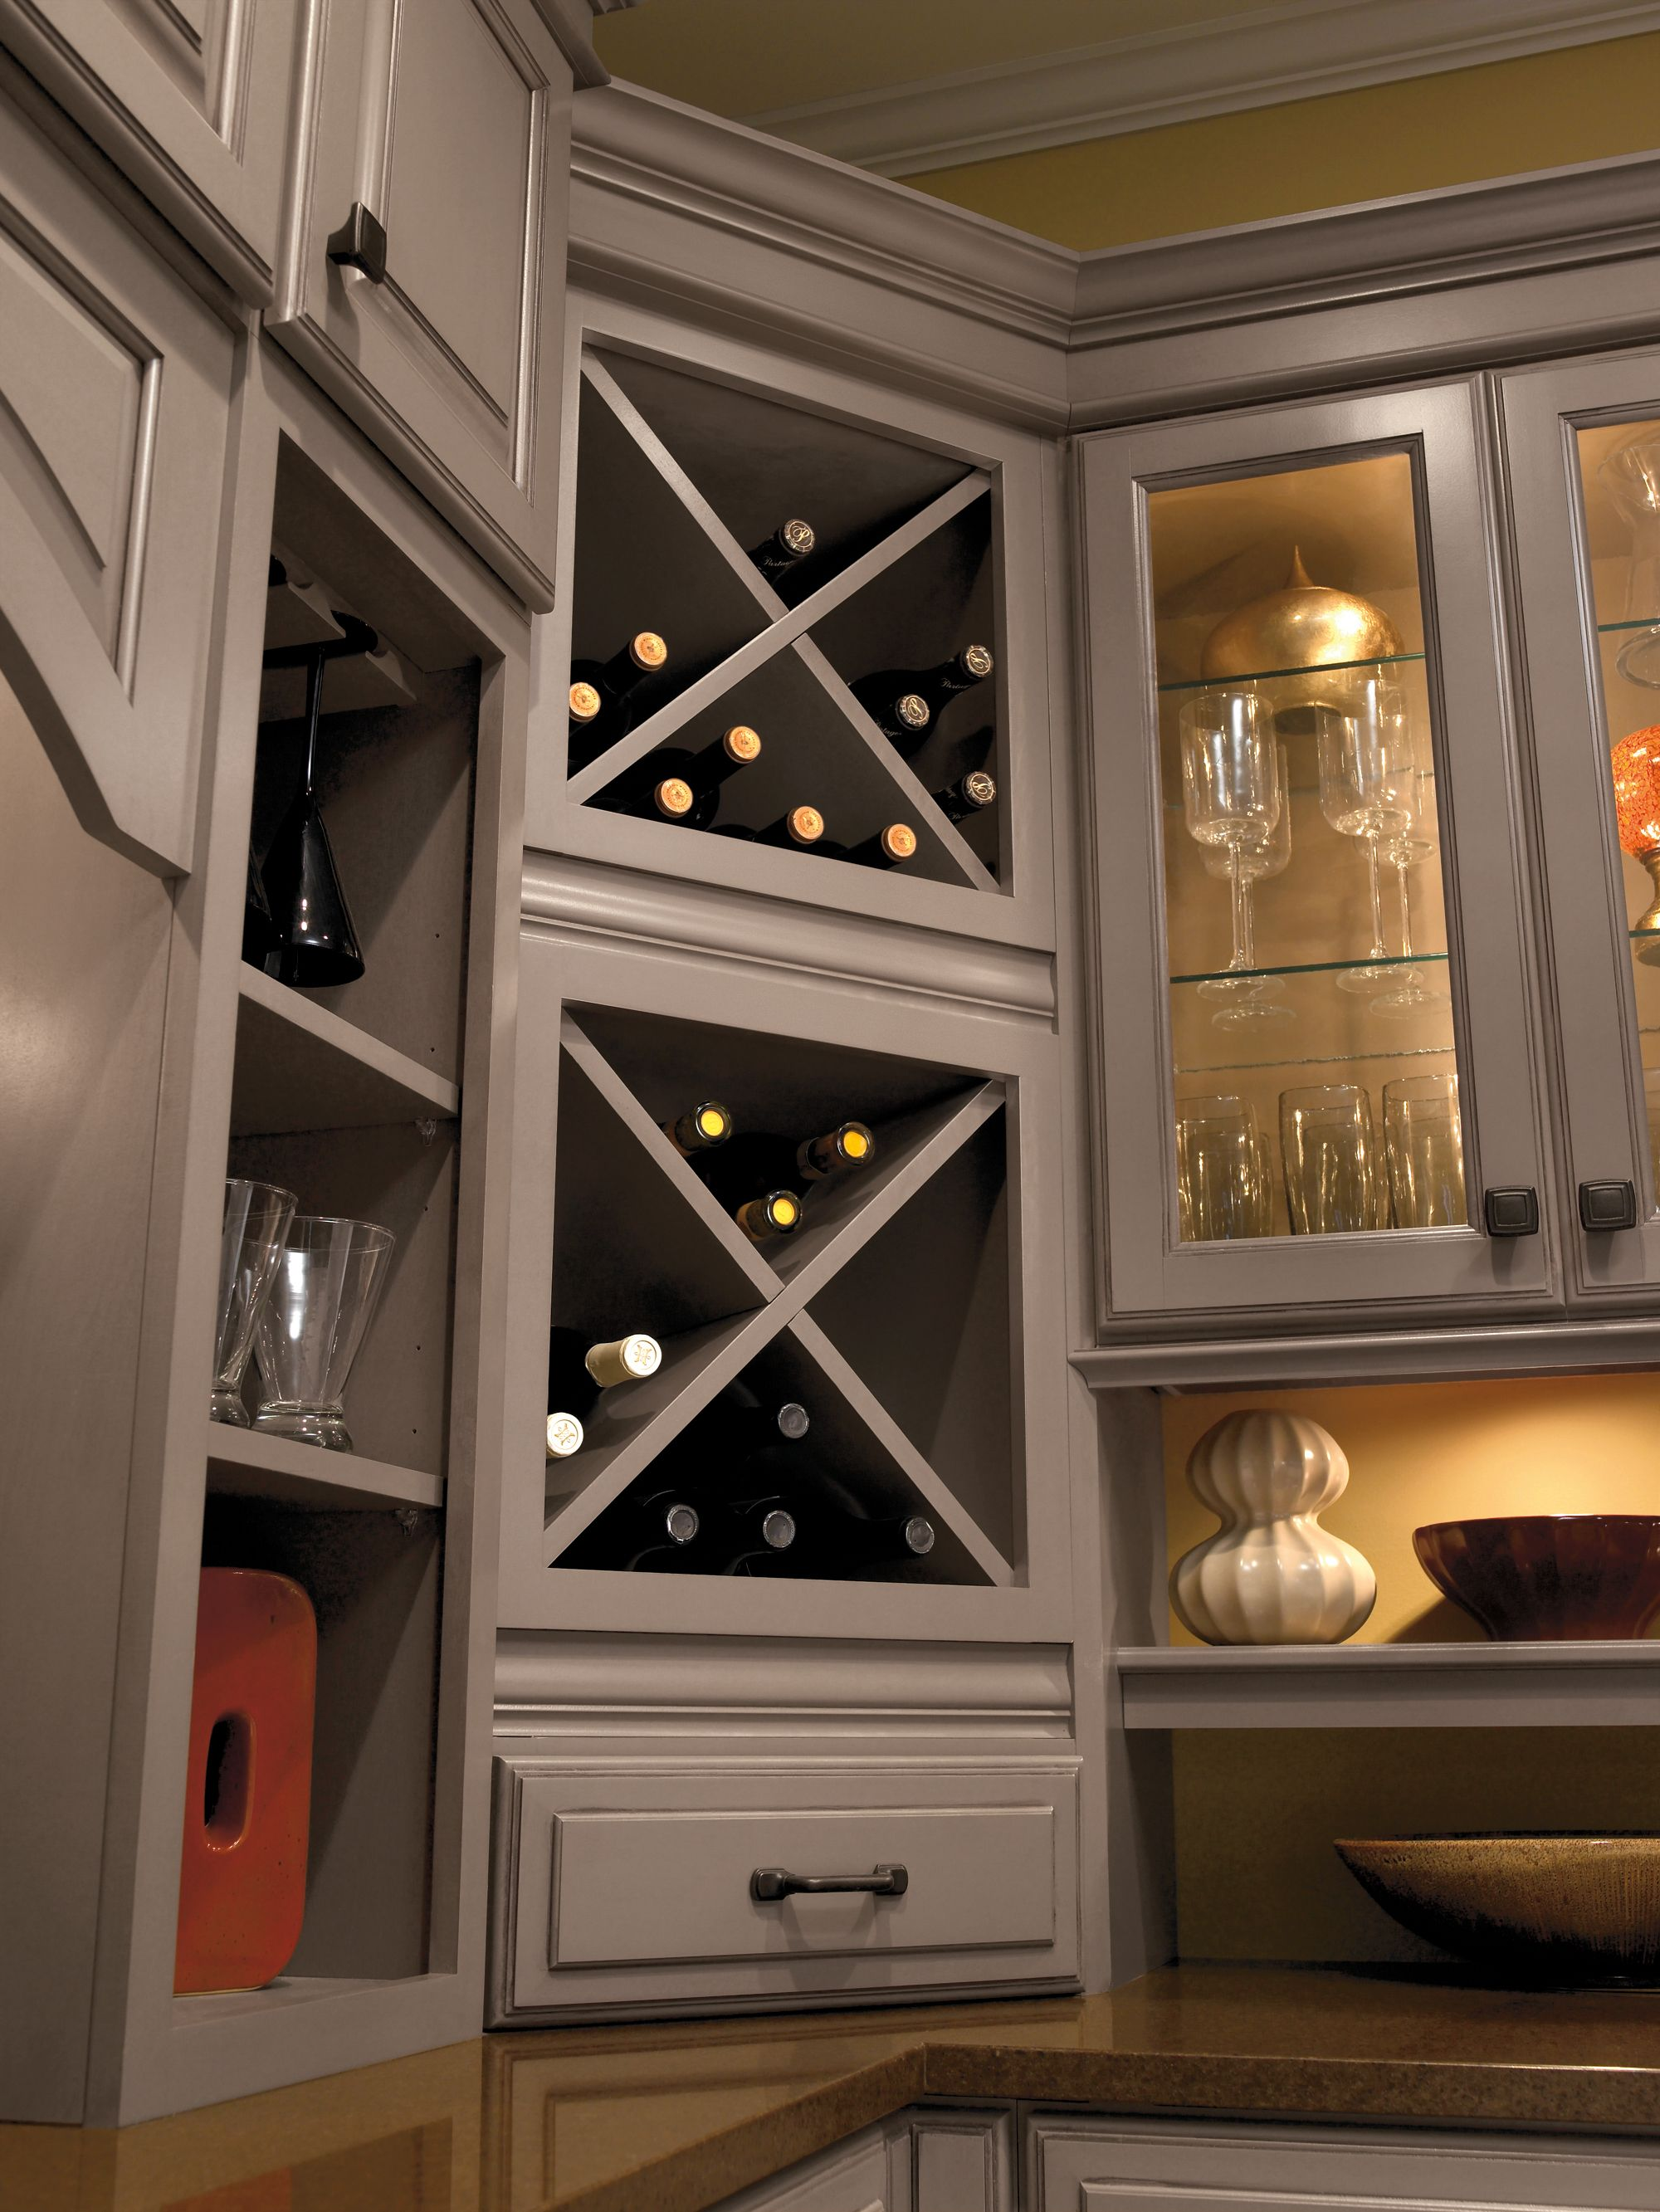 Built-in Wine Rack Cabinet Storage #schrock #masterbrand #csikitchenandbath & Built-in Wine Rack Cabinet Storage #schrock #masterbrand ...